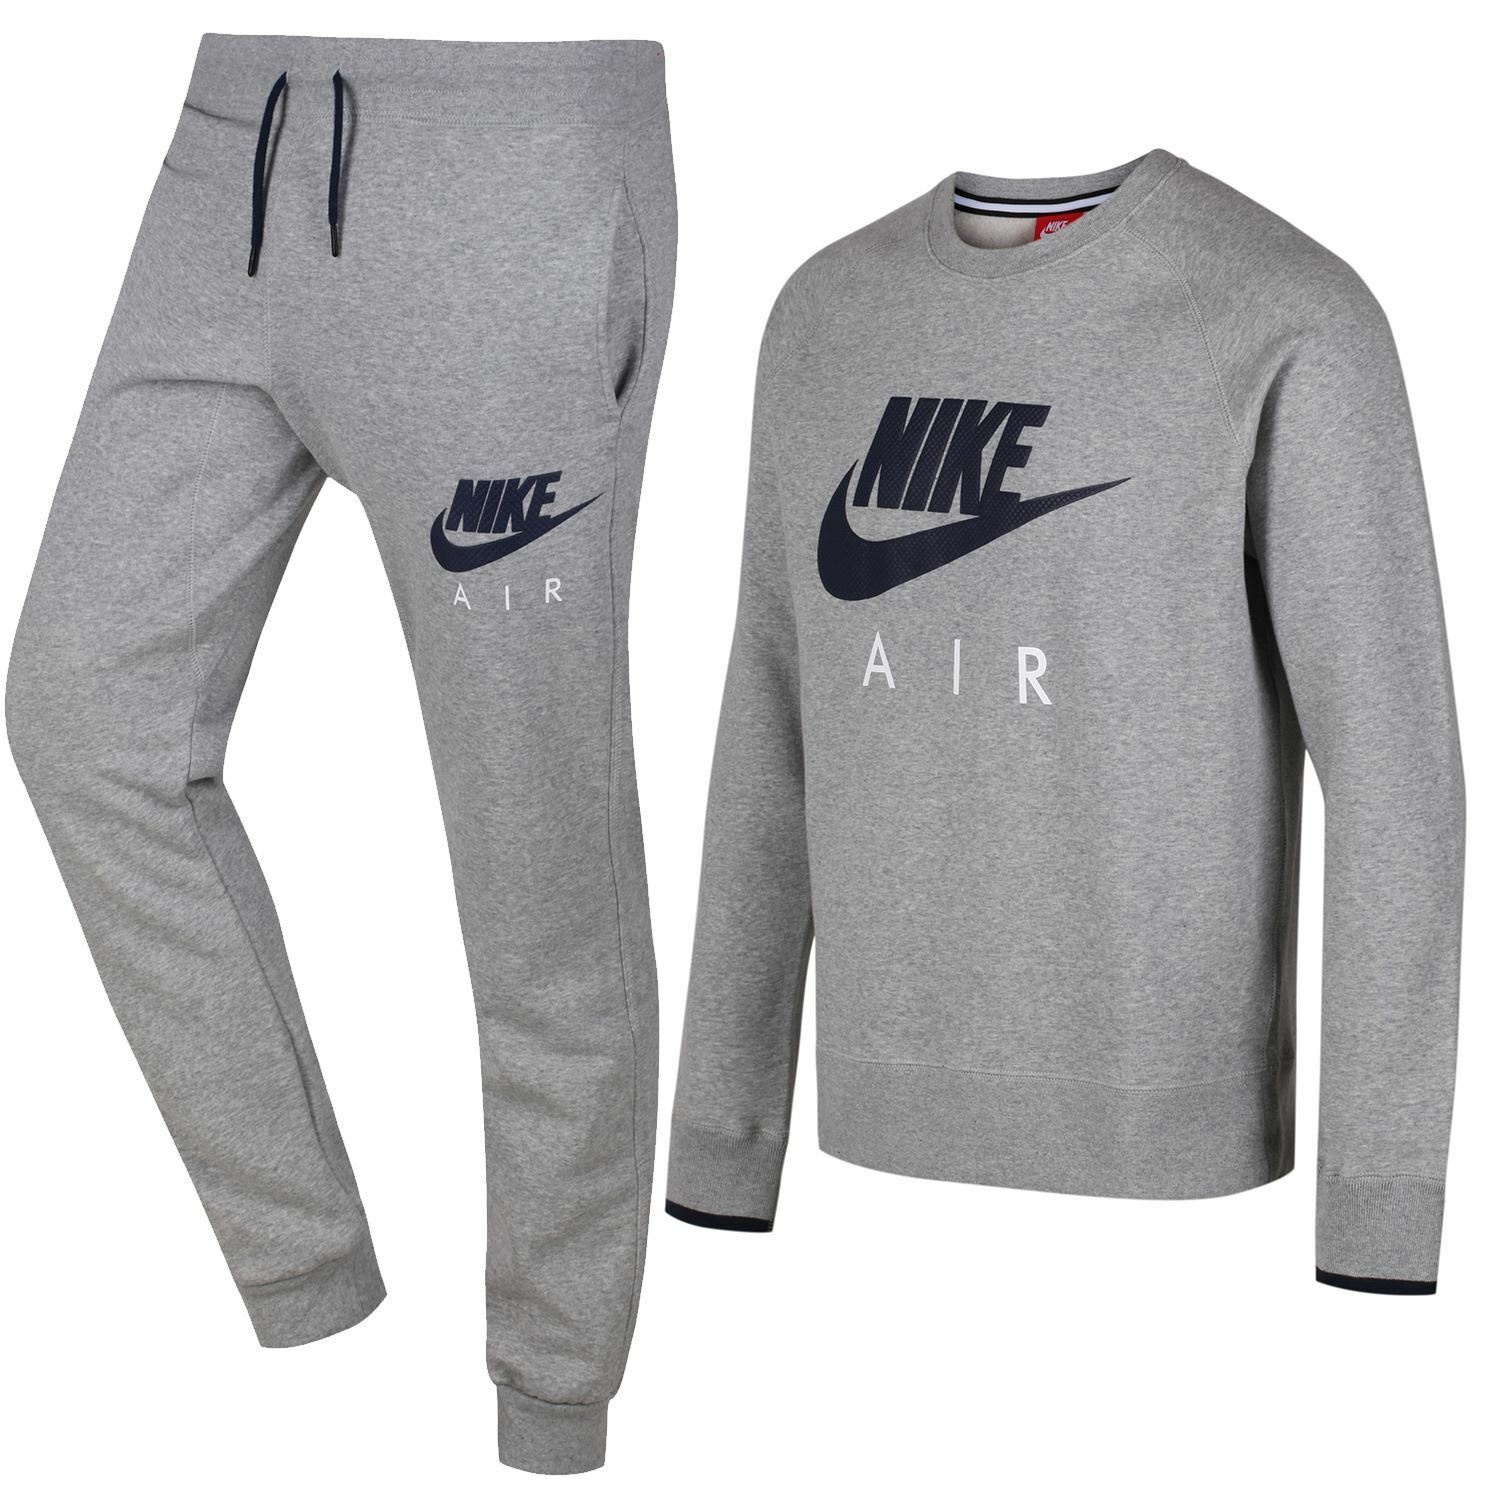 Nike Air AW77 Heritage Heritage Heritage Chándal Polar Gris Estampado S M L XL ropa deportiva aa60b9